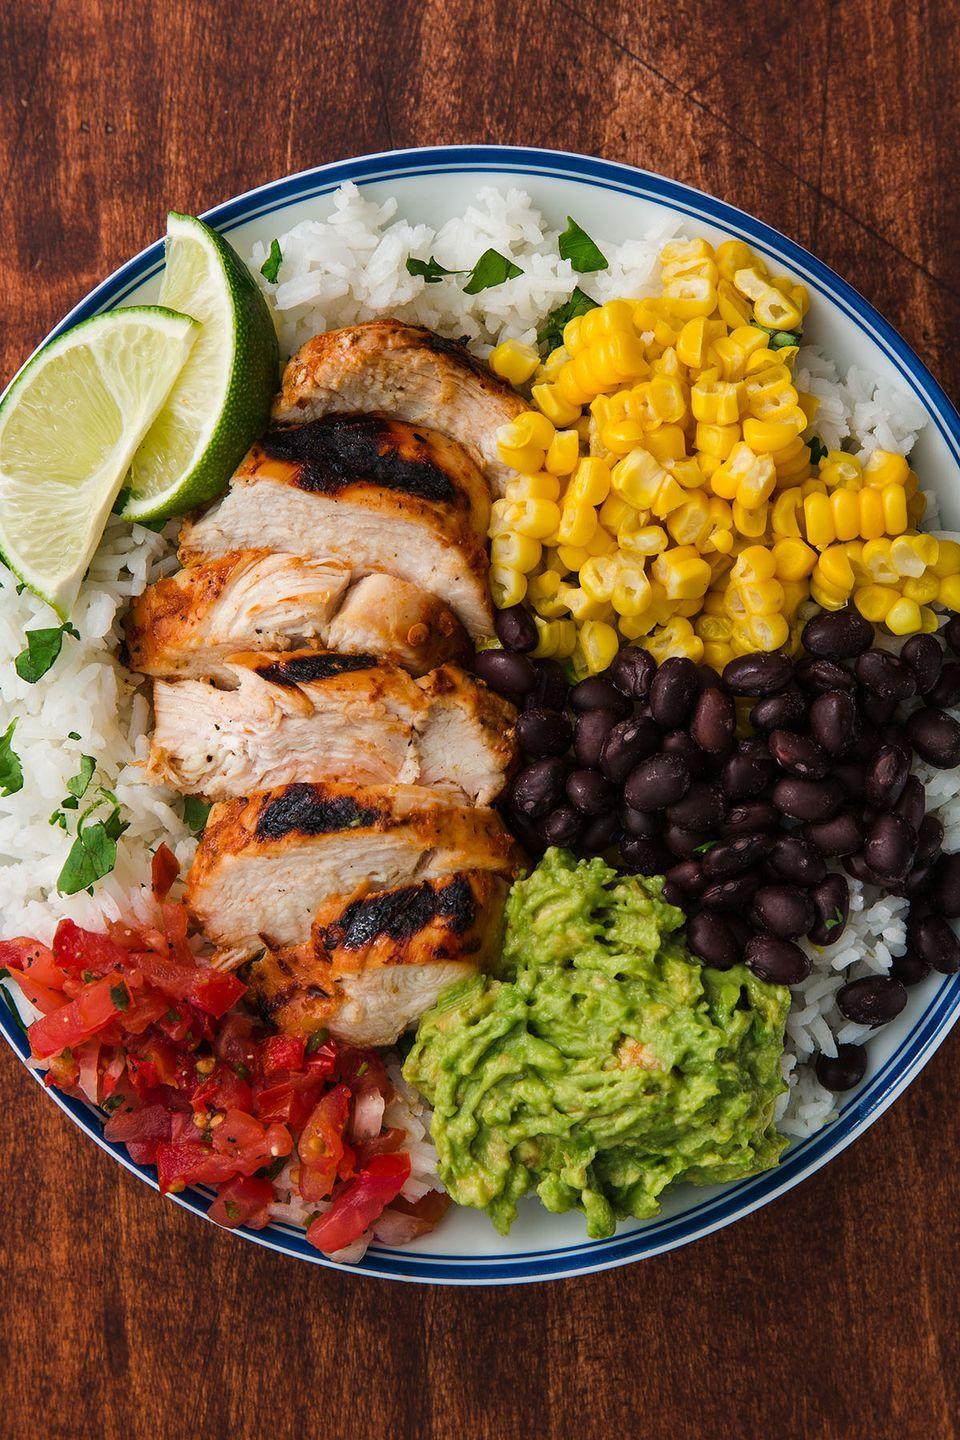 "<p>Guac isn't extra at home.</p><p>Get the recipe from <a href=""https://www.delish.com/cooking/recipe-ideas/a22096112/copycat-chipotle-chicken-recipe/"" rel=""nofollow noopener"" target=""_blank"" data-ylk=""slk:Delish."" class=""link rapid-noclick-resp"">Delish. </a></p>"